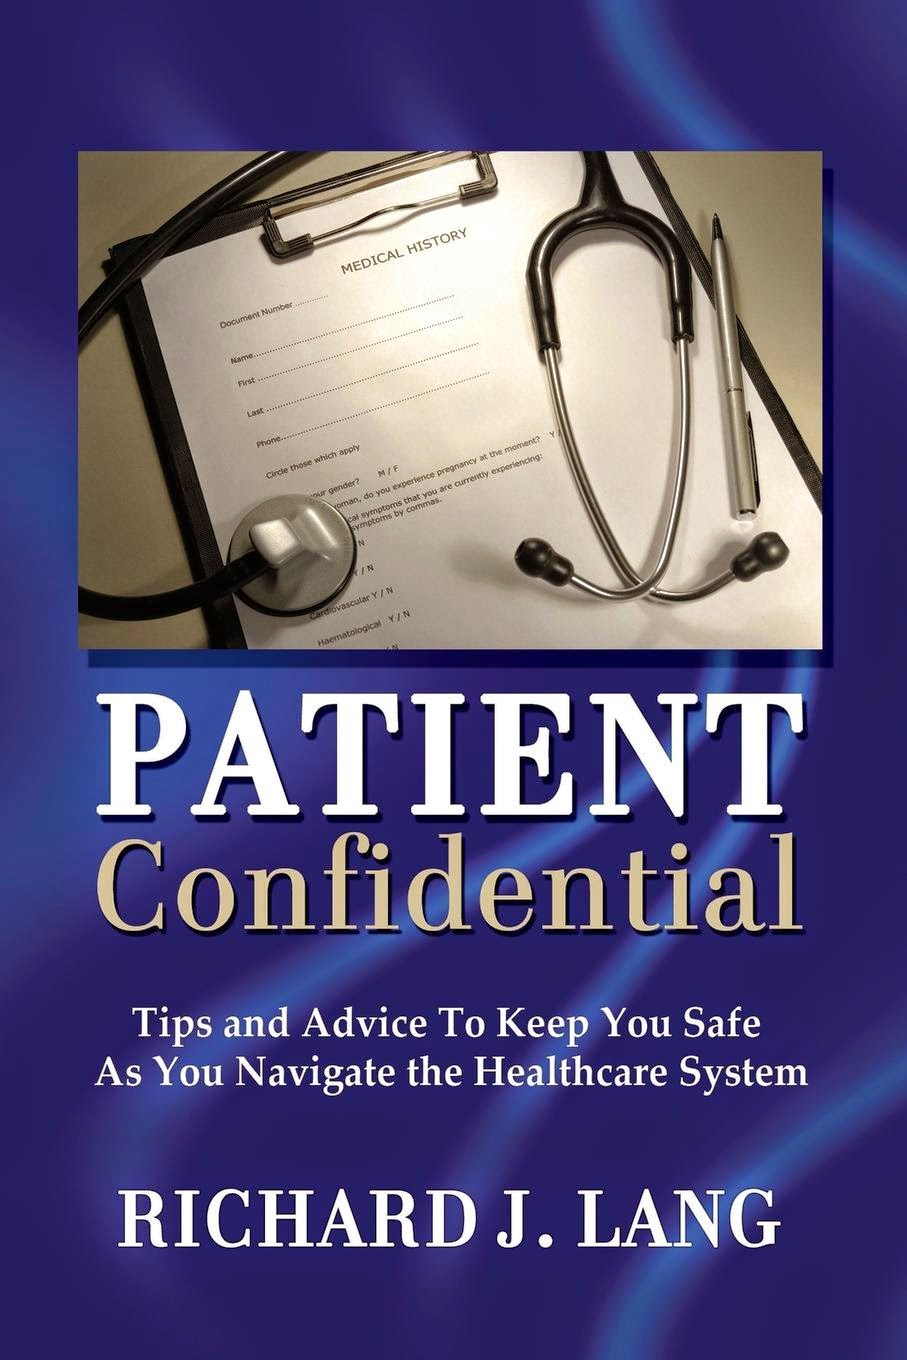 Patient Confidential